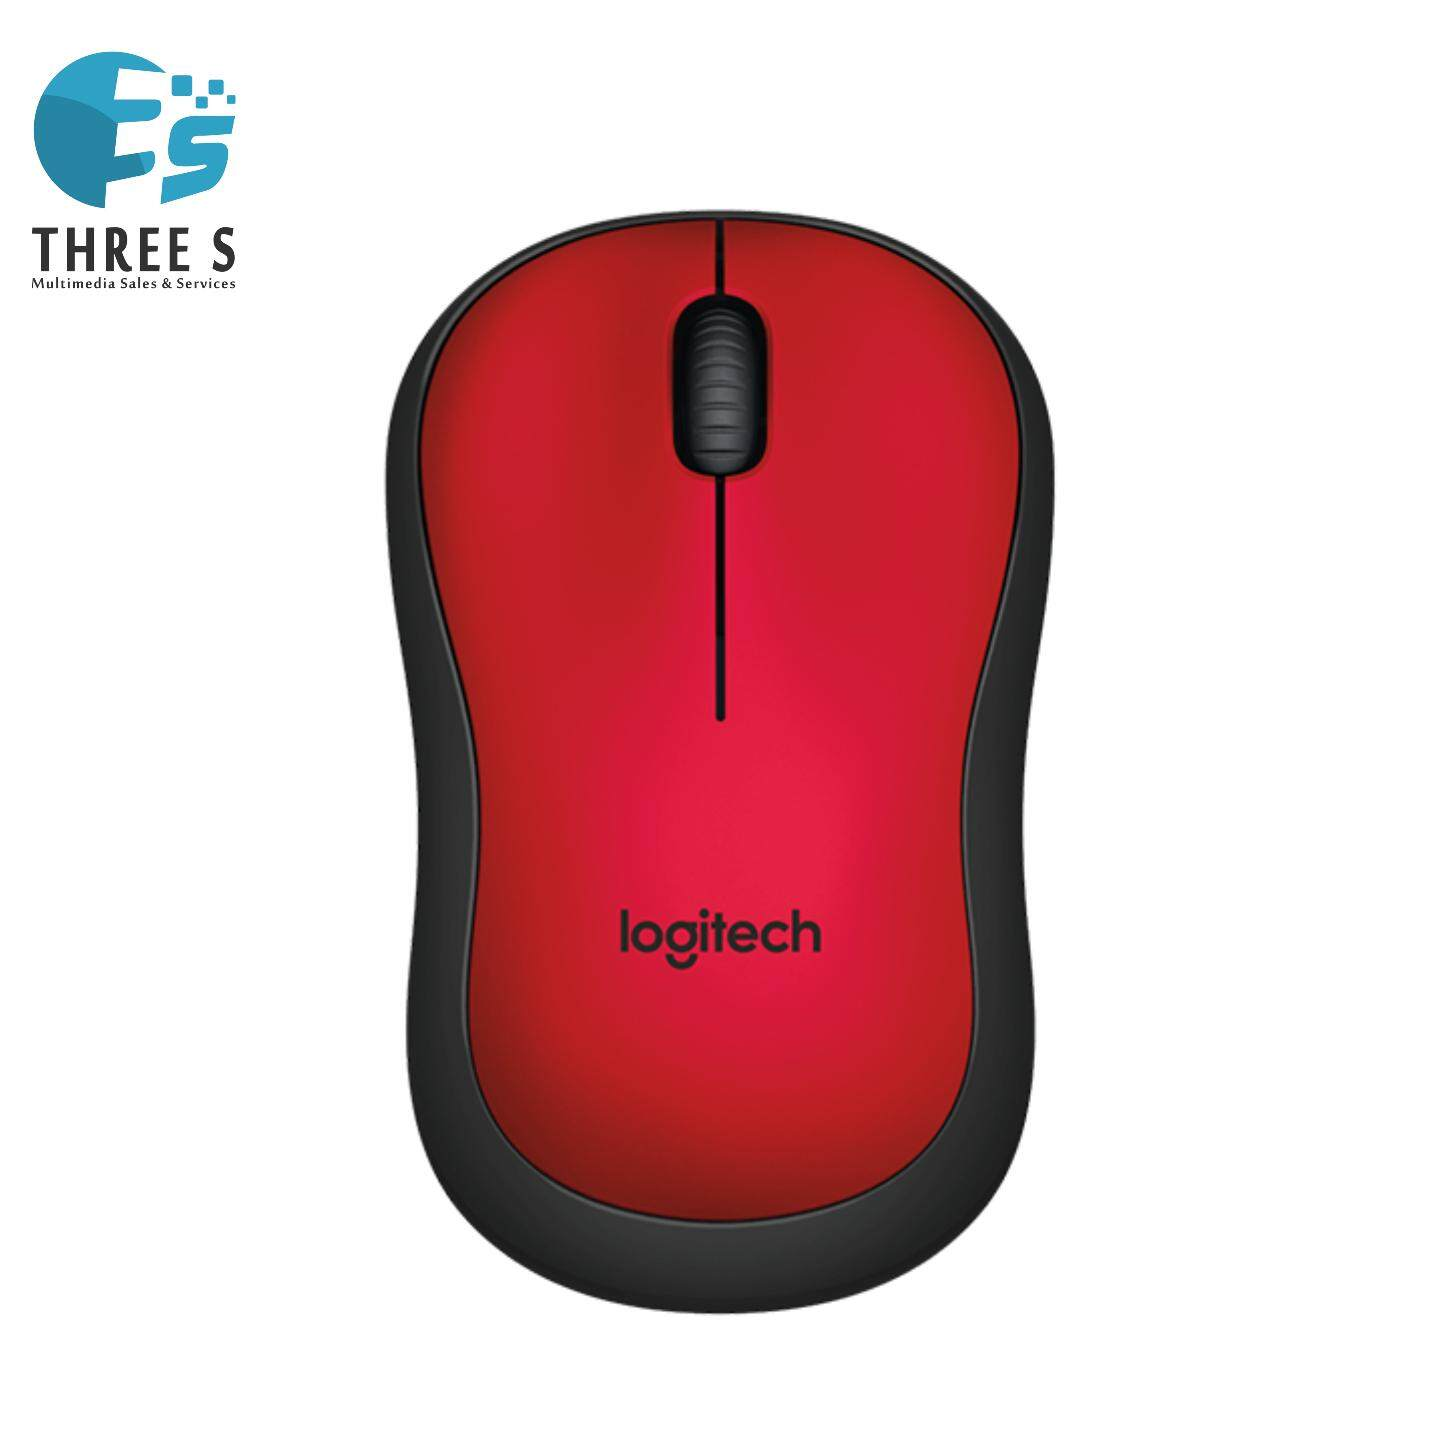 Ready Stock - Logitech M221 Silent Wireless Mouse